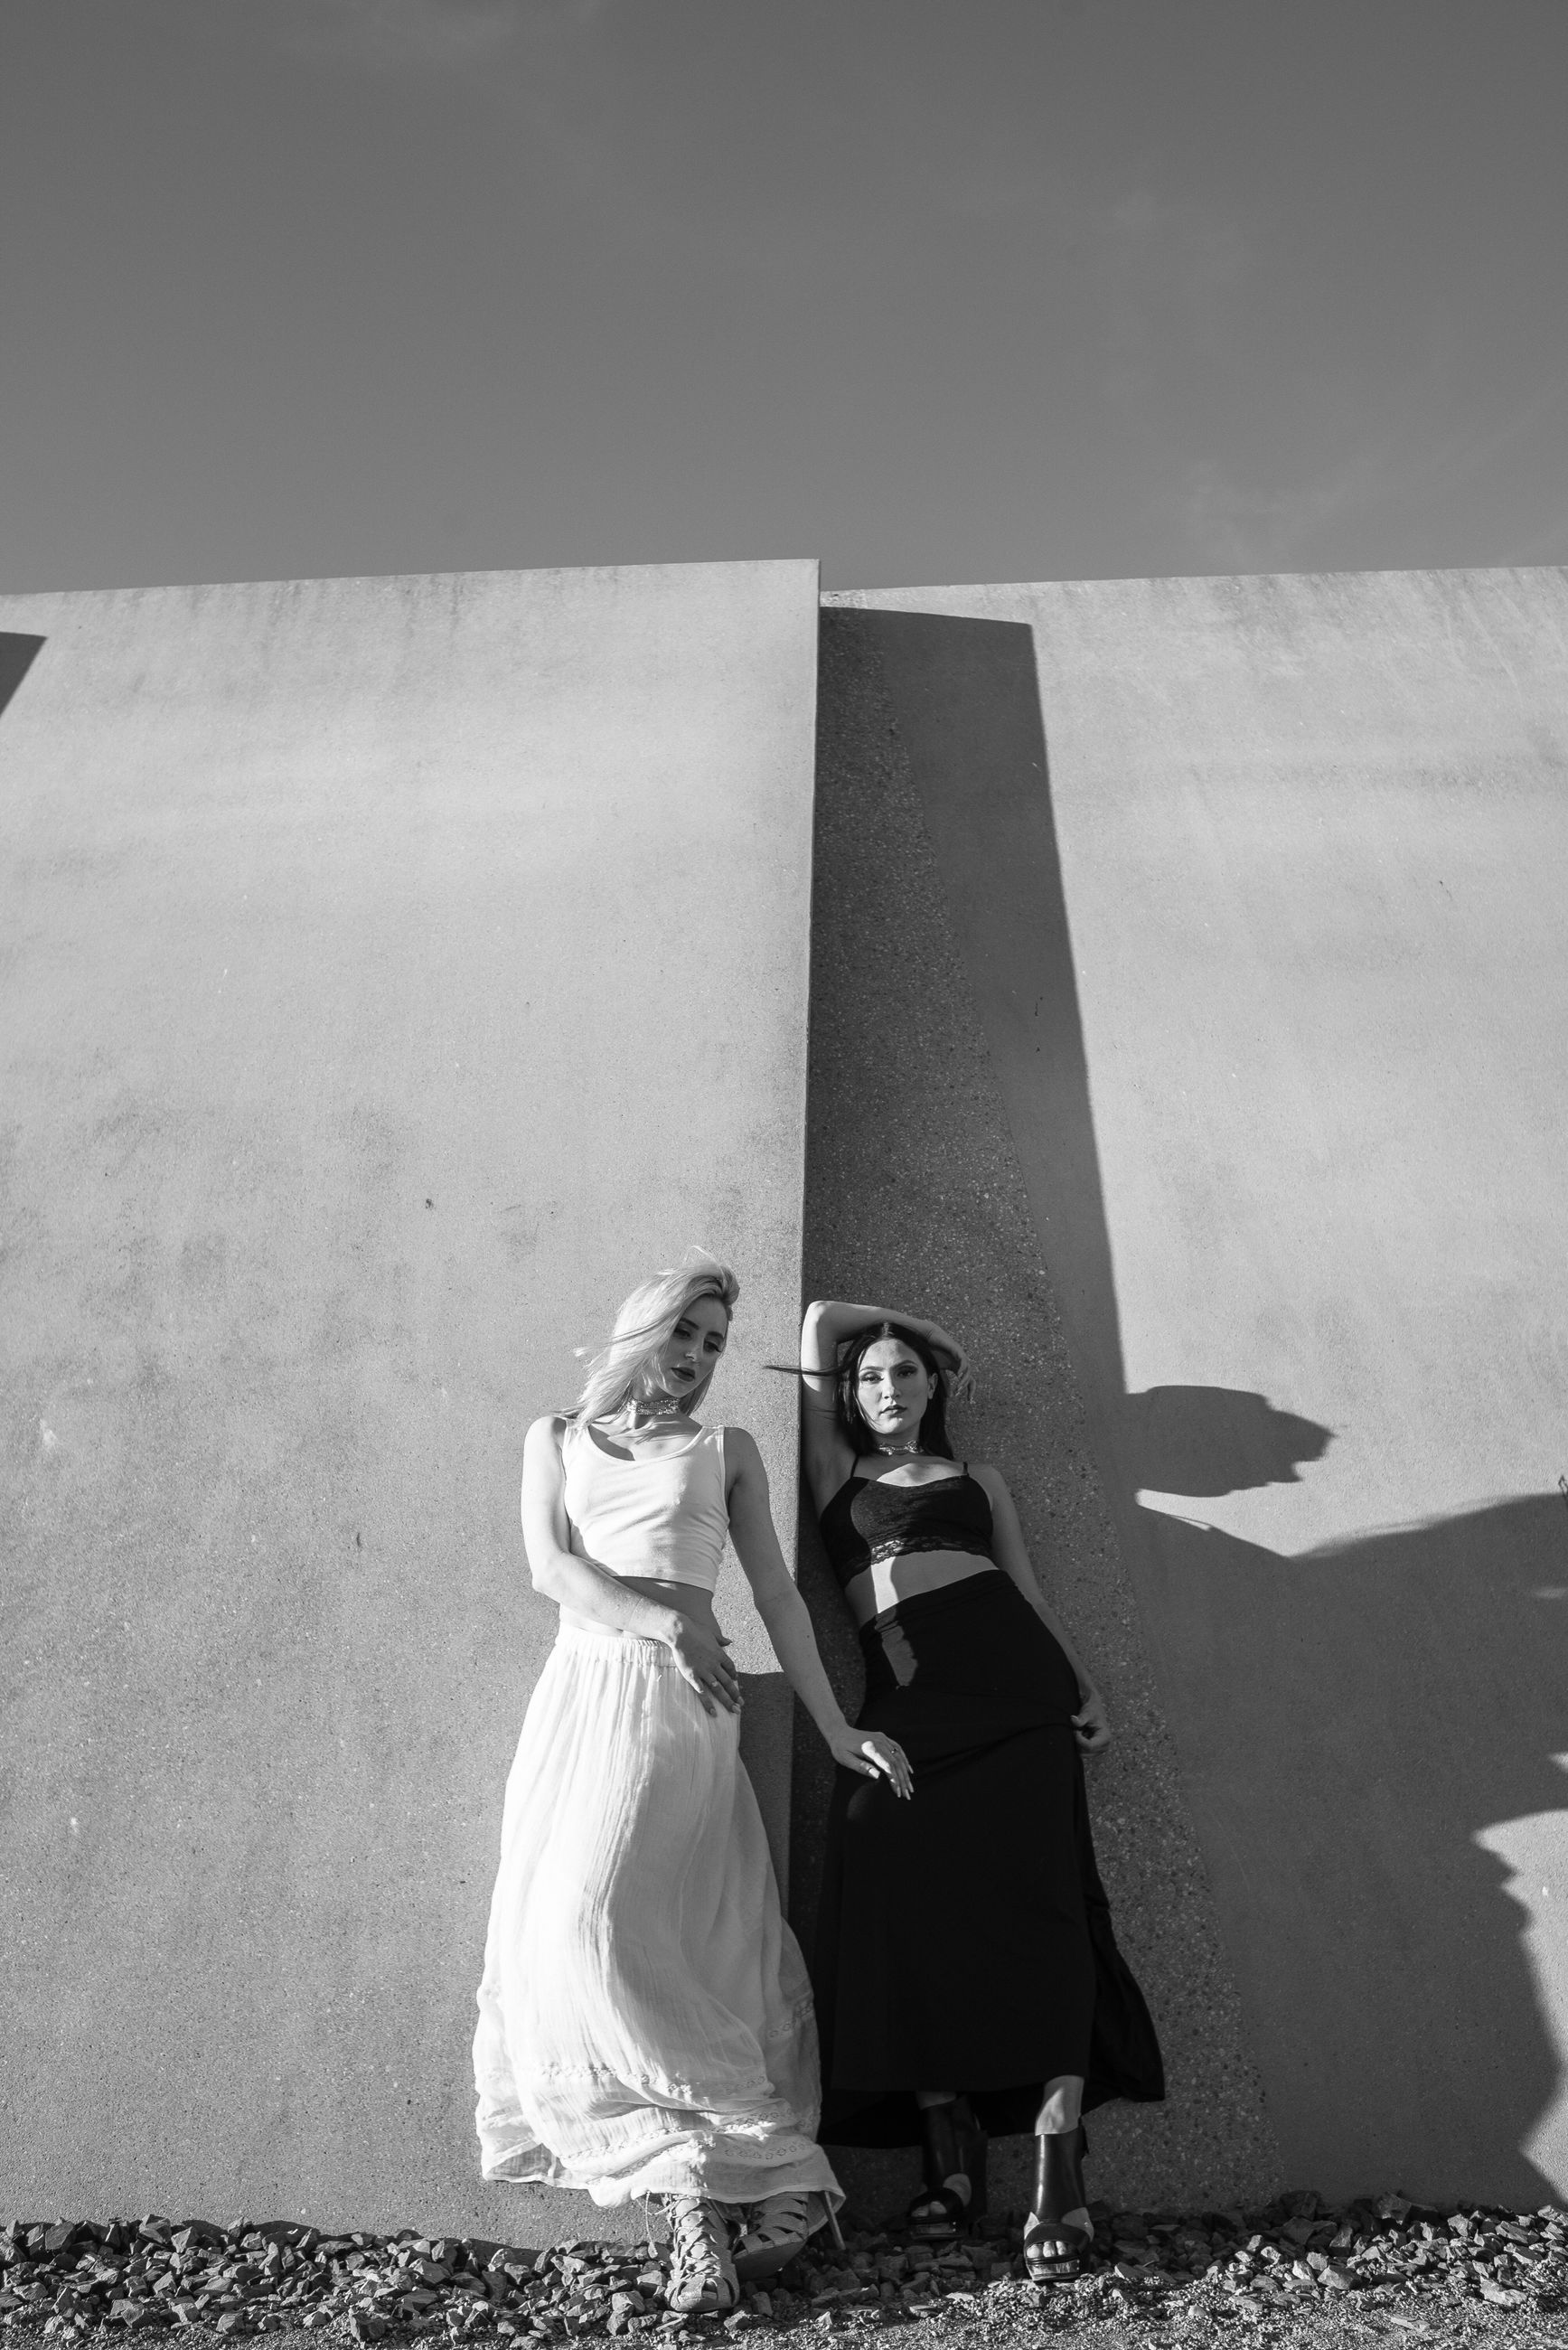 young women, full length, young adult, real people, women, outdoors, day, lifestyles, standing, bride, wedding dress, nature, sky, people